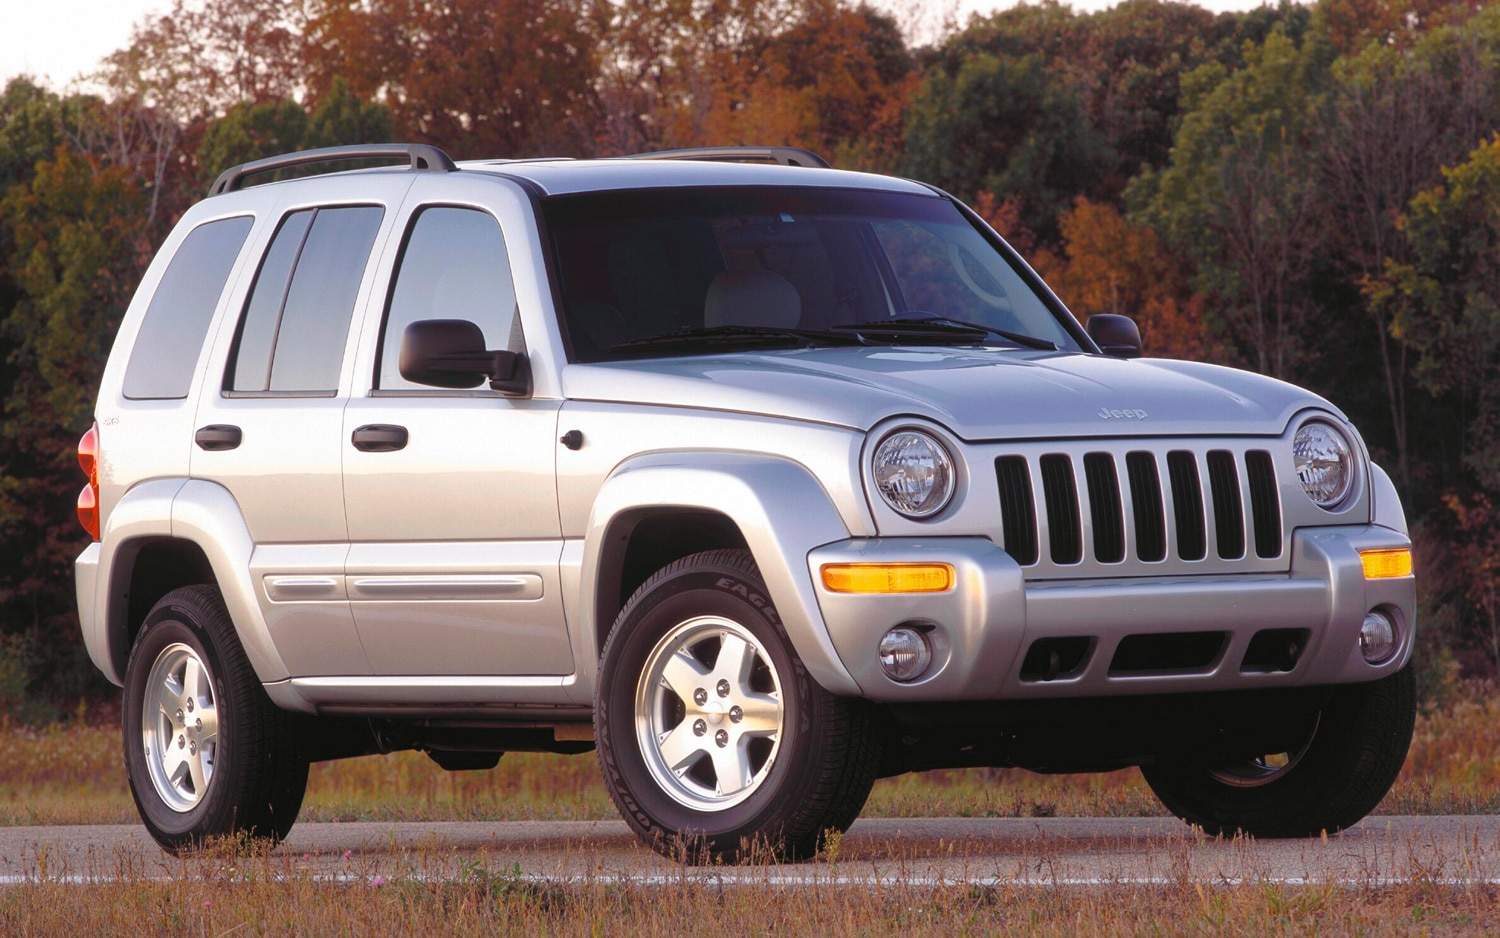 2002 Jeep Liberty Front Three Quarters View1